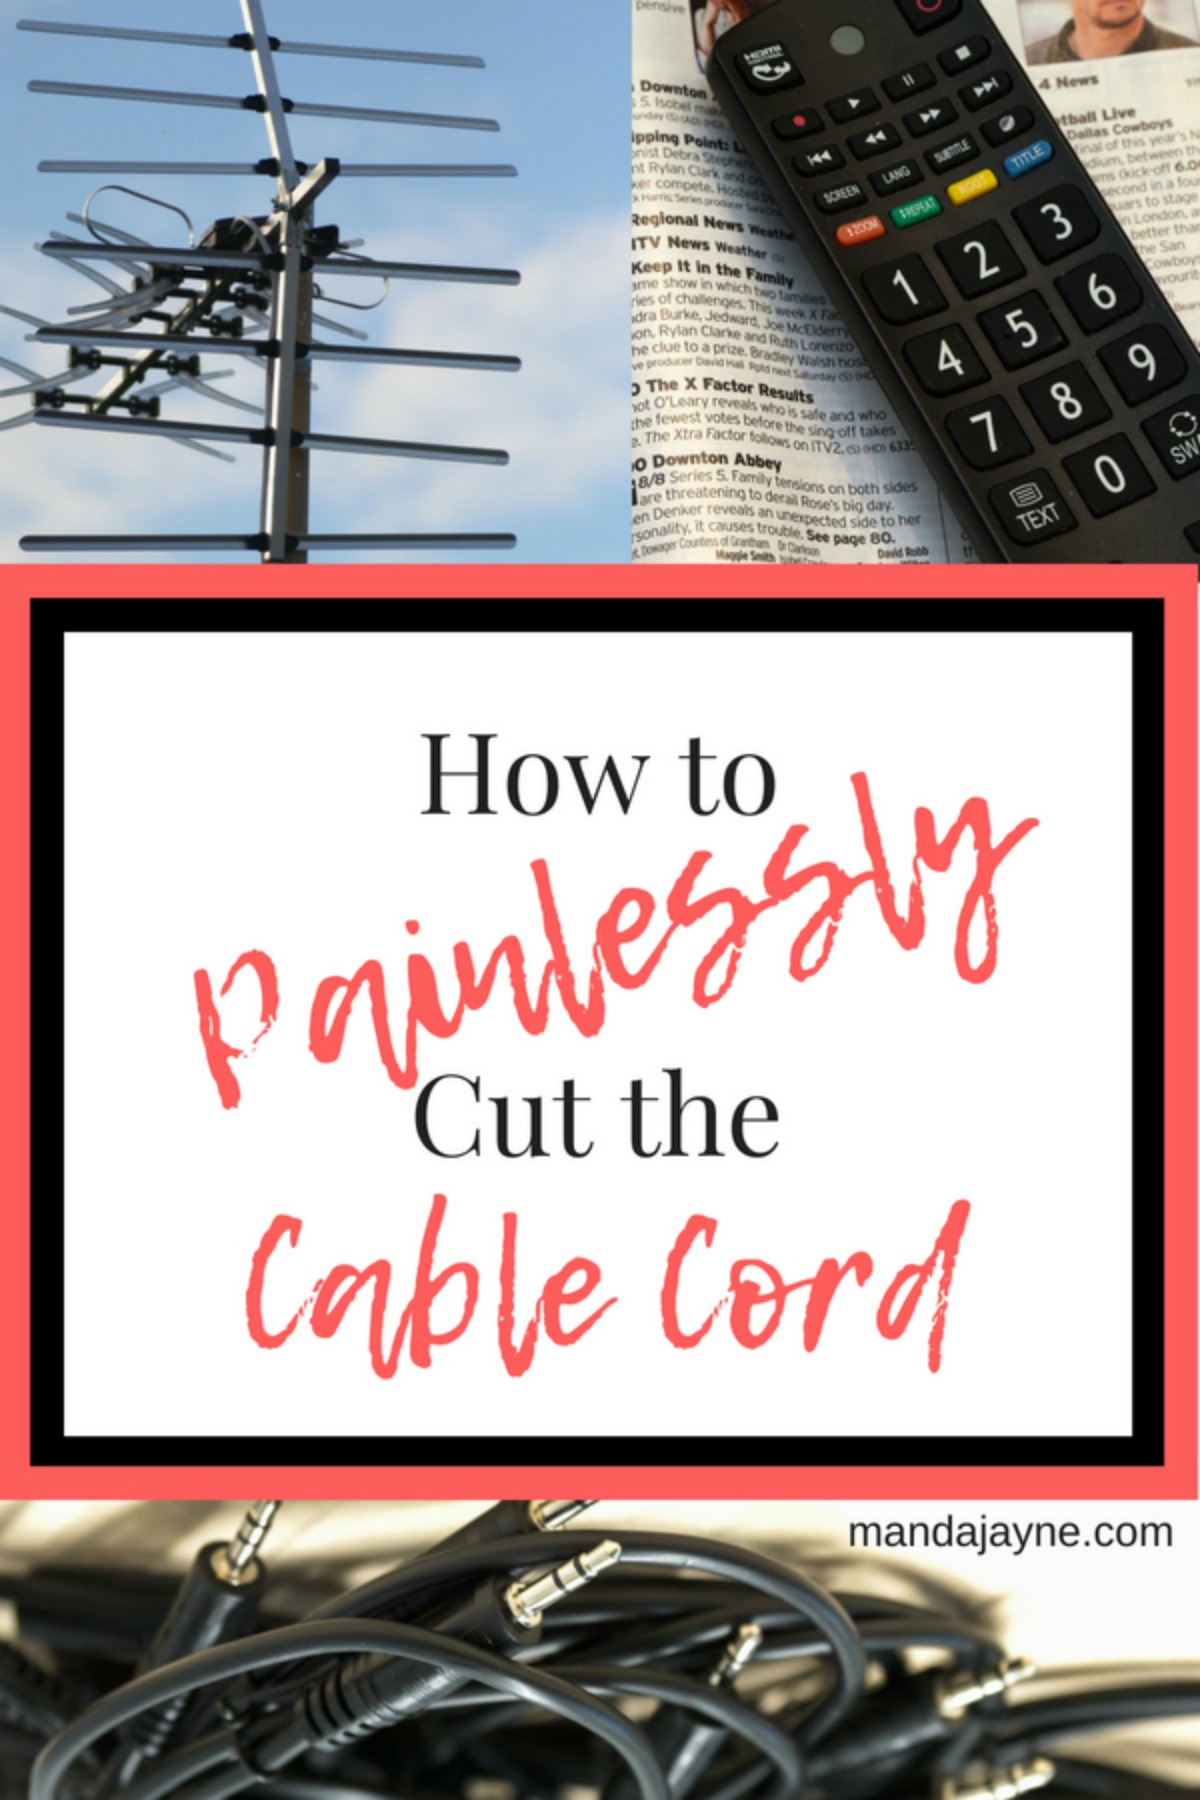 How to Painlessly Cut the Cable Cord